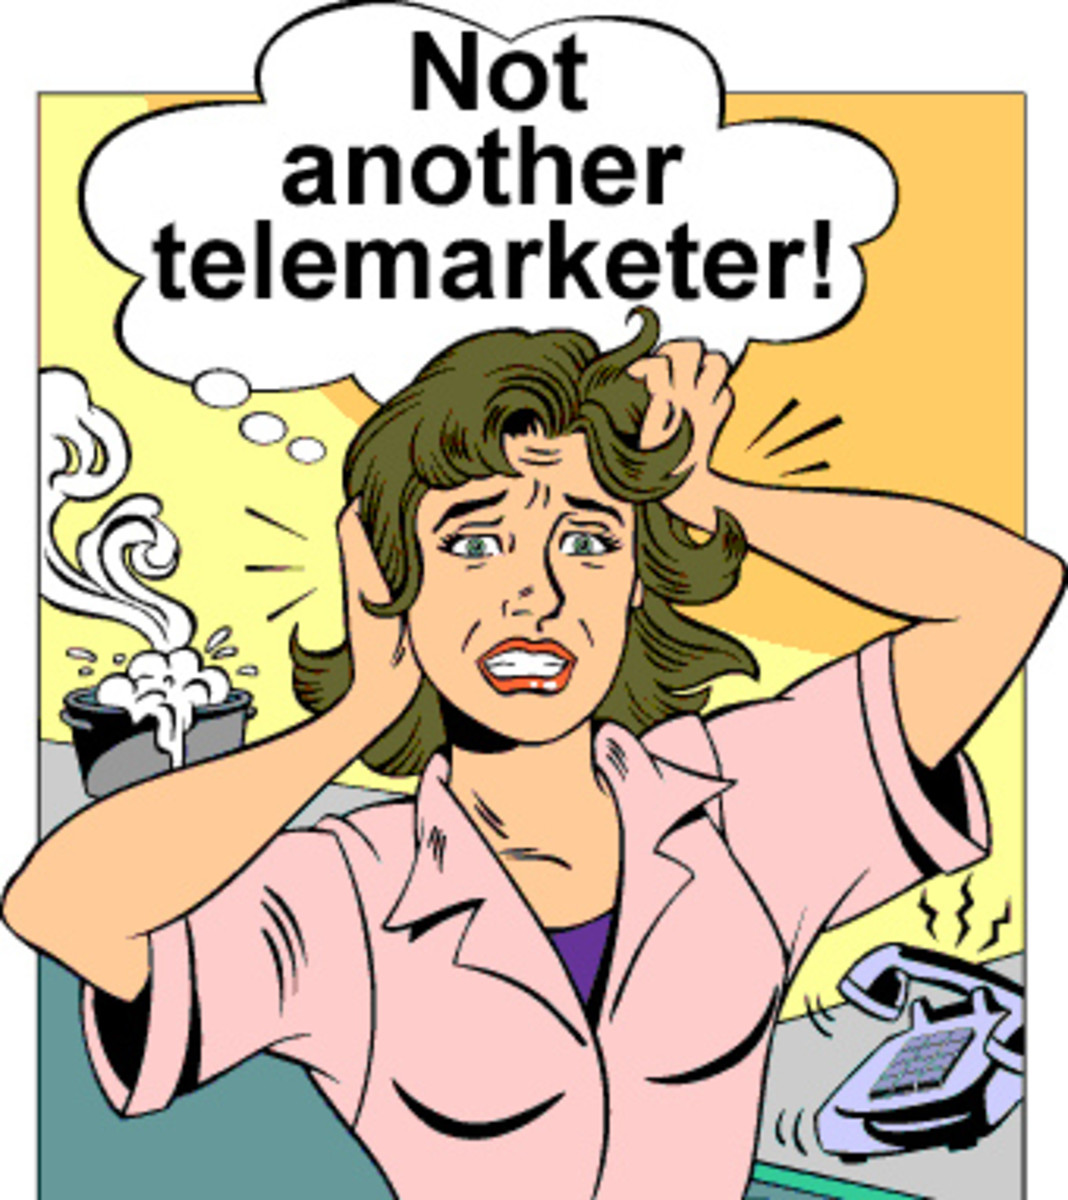 Not another interruption from a telemarketer!